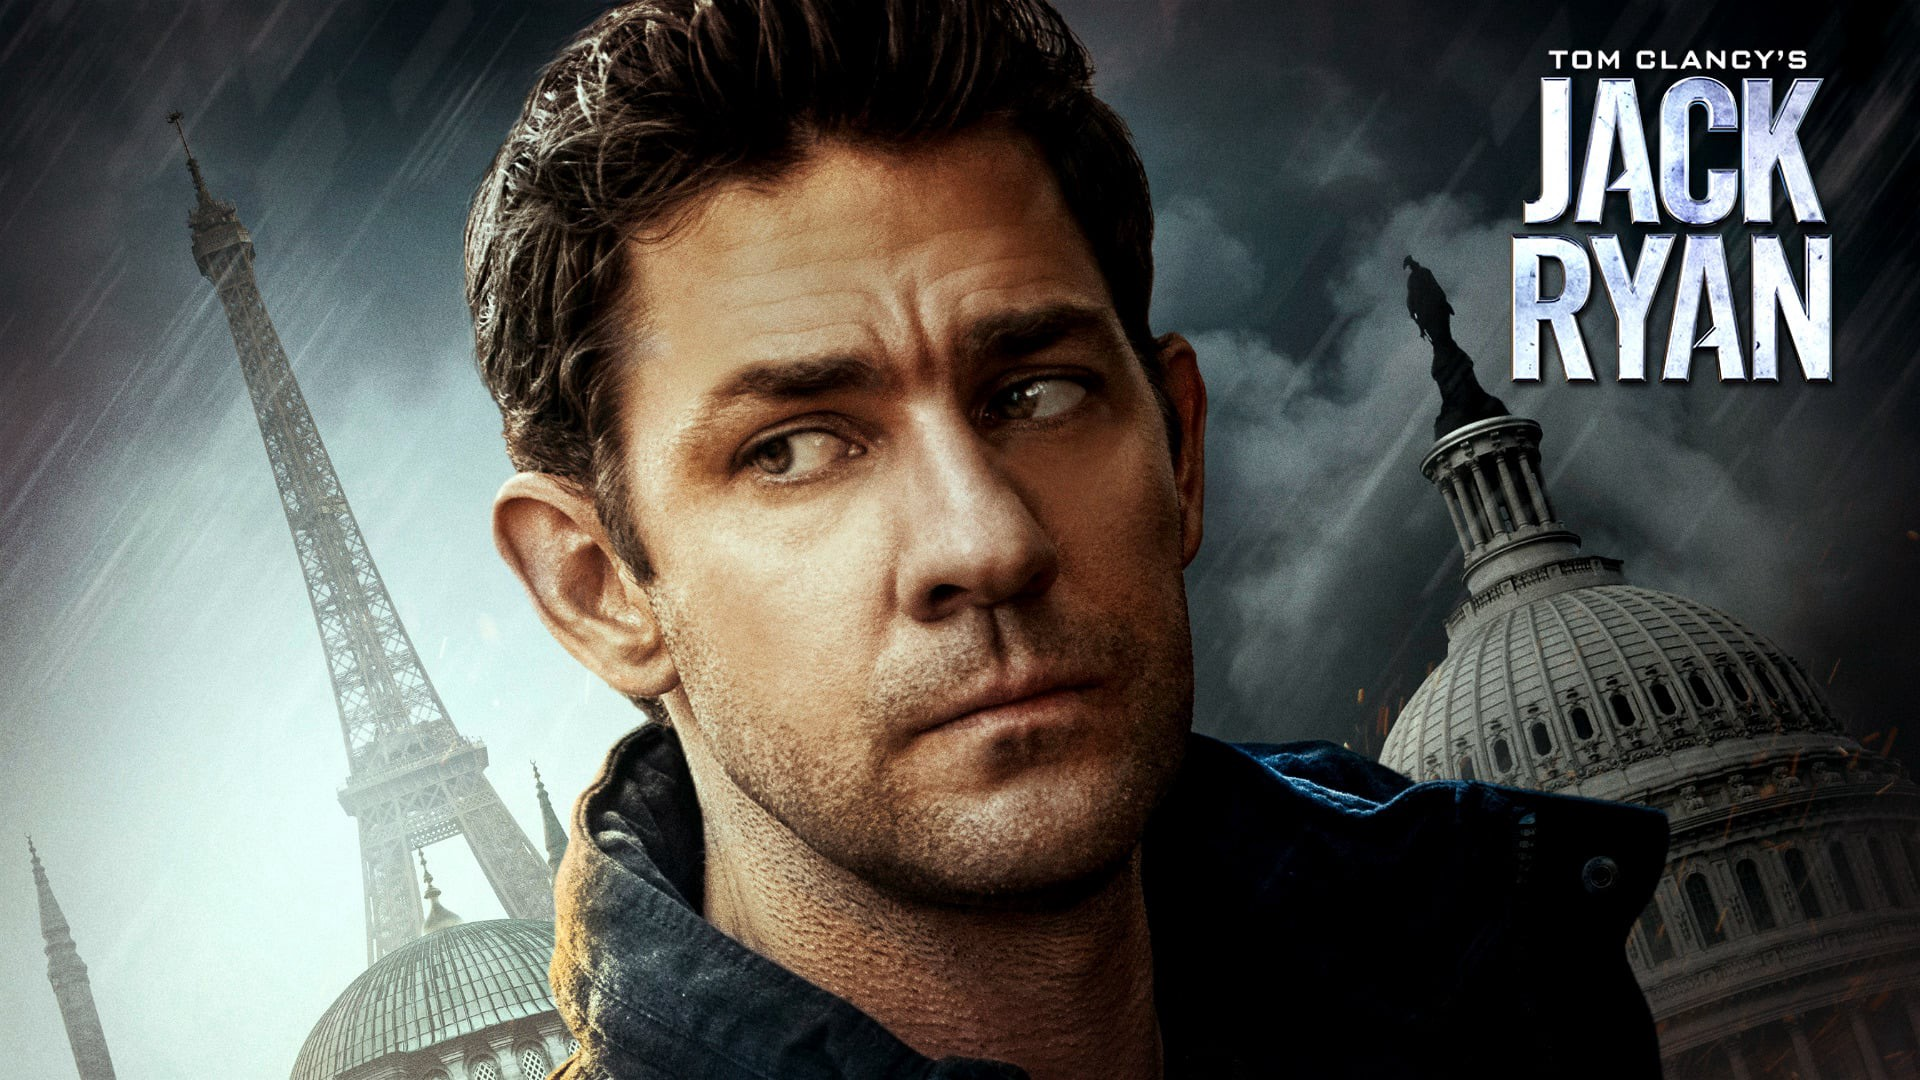 Jack Ryan Season 3 Trailer and Release Date